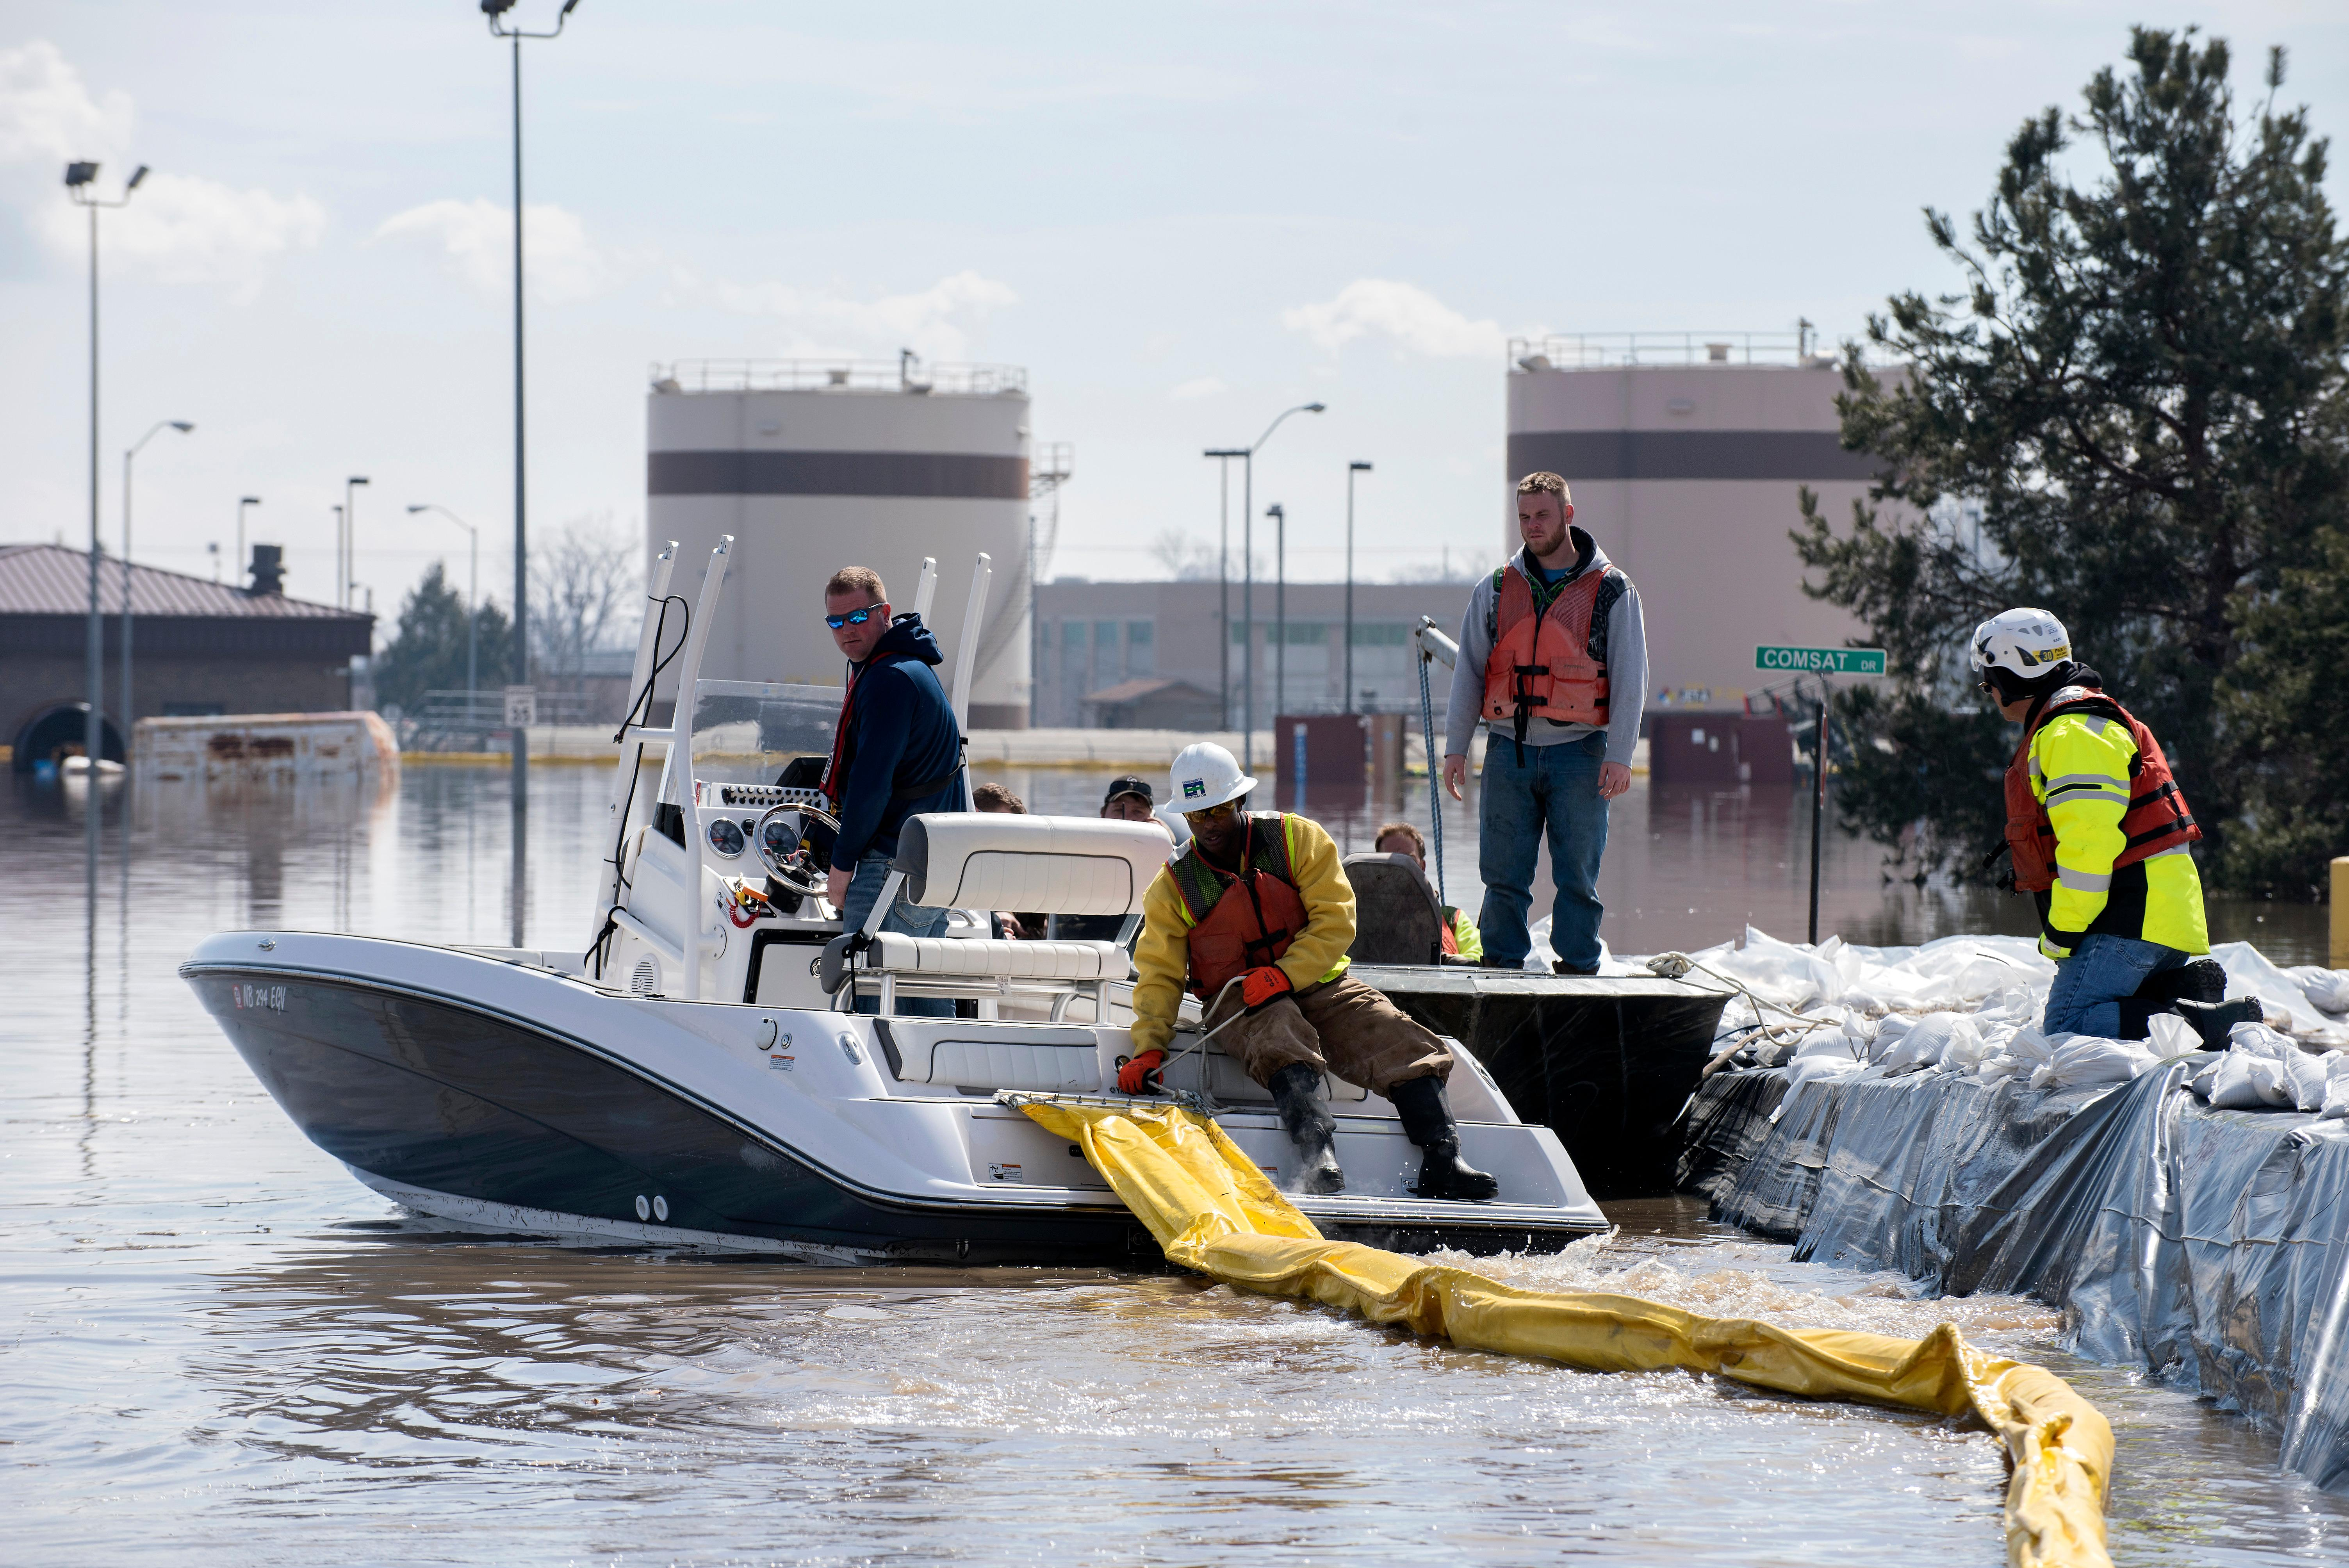 In this March 18, 2019 photo released by the U.S. Air Force, environmental restoration employees deploy a containment boom from a boat on Offutt Air Force Base in Neb., as a precautionary measure for possible fuel leaks in the flooded area. (Delanie Stafford, The U.S. Air Force via AP)